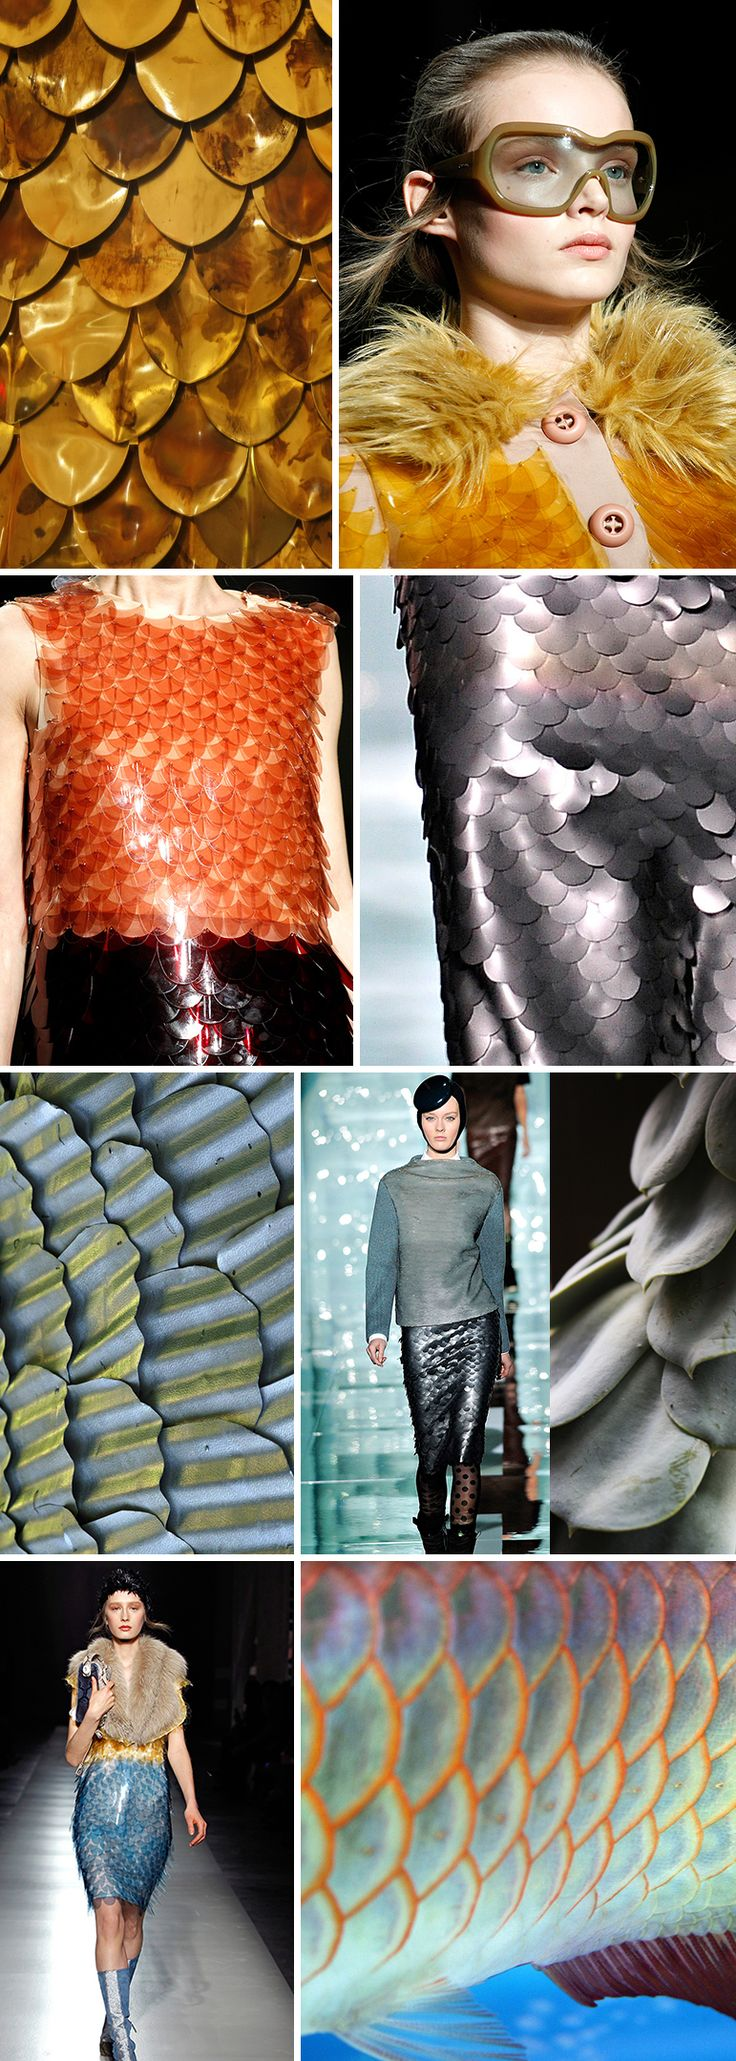 Biomimicry | Fish Scale & Scallop Patterns